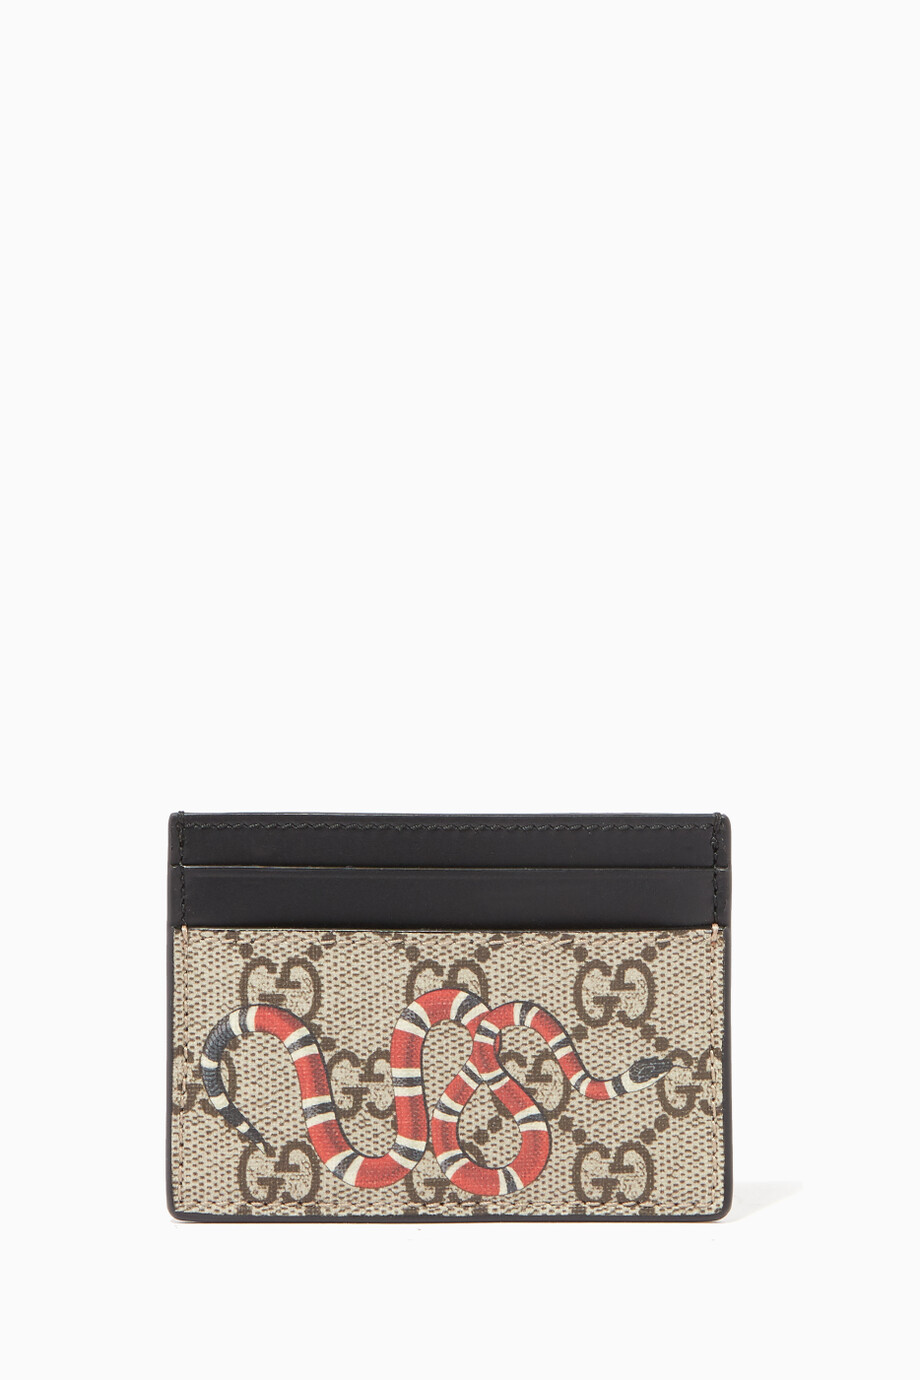 9ee308151f92 Shop Gucci Neutral Beige & Ebony Kingsnake Print GG Card Case for ...